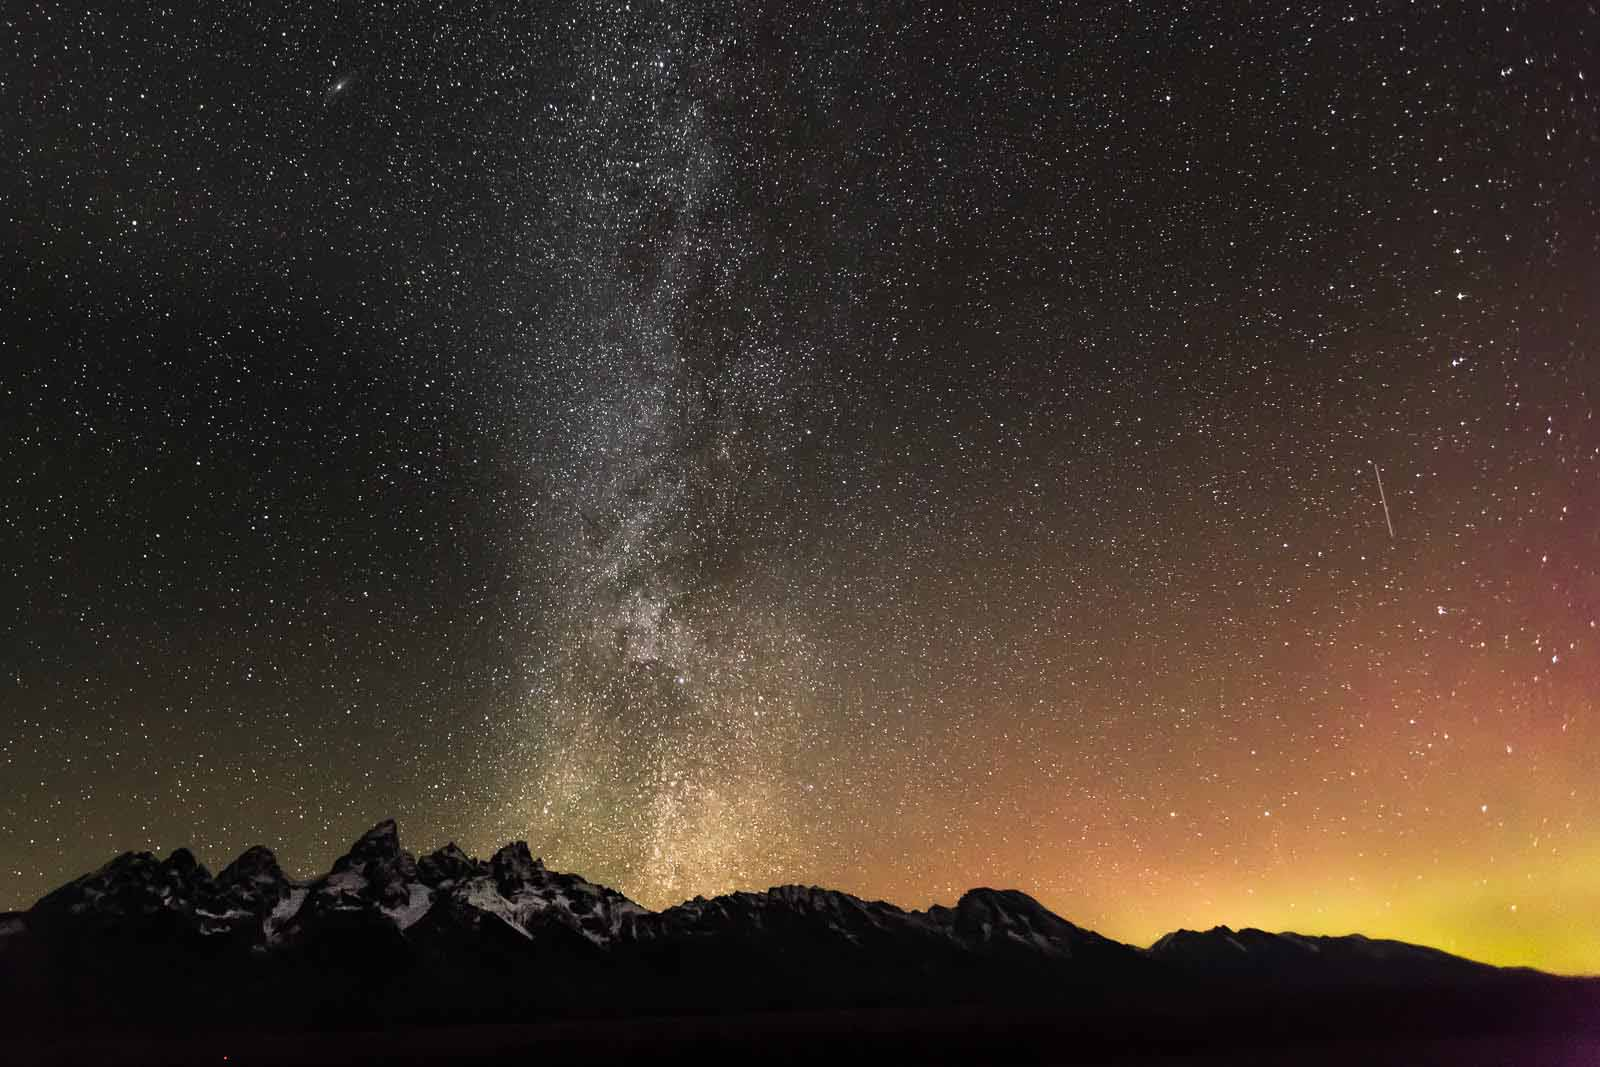 The Milky Way night photography